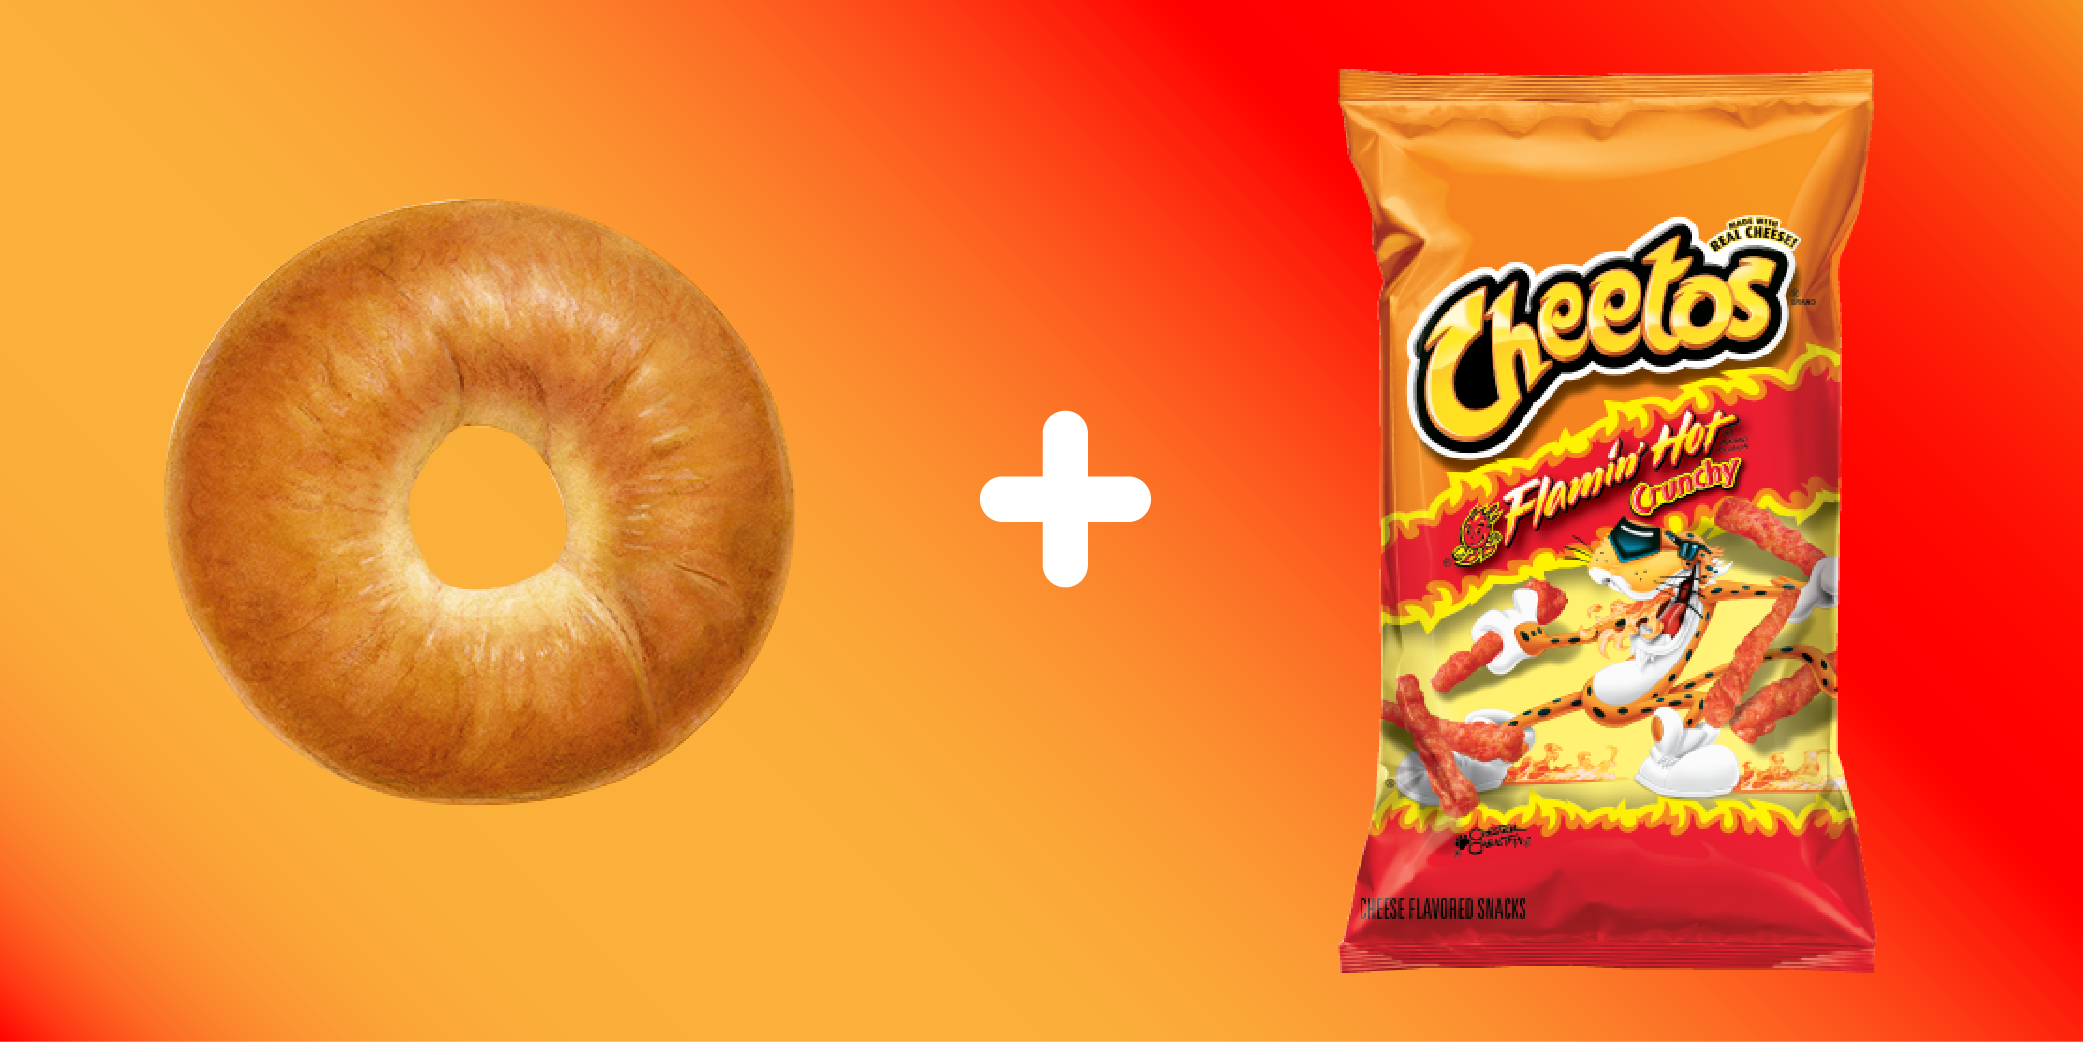 This Is Not a Drill: A Flamin' Hot Cheetos Bagel Now Exists